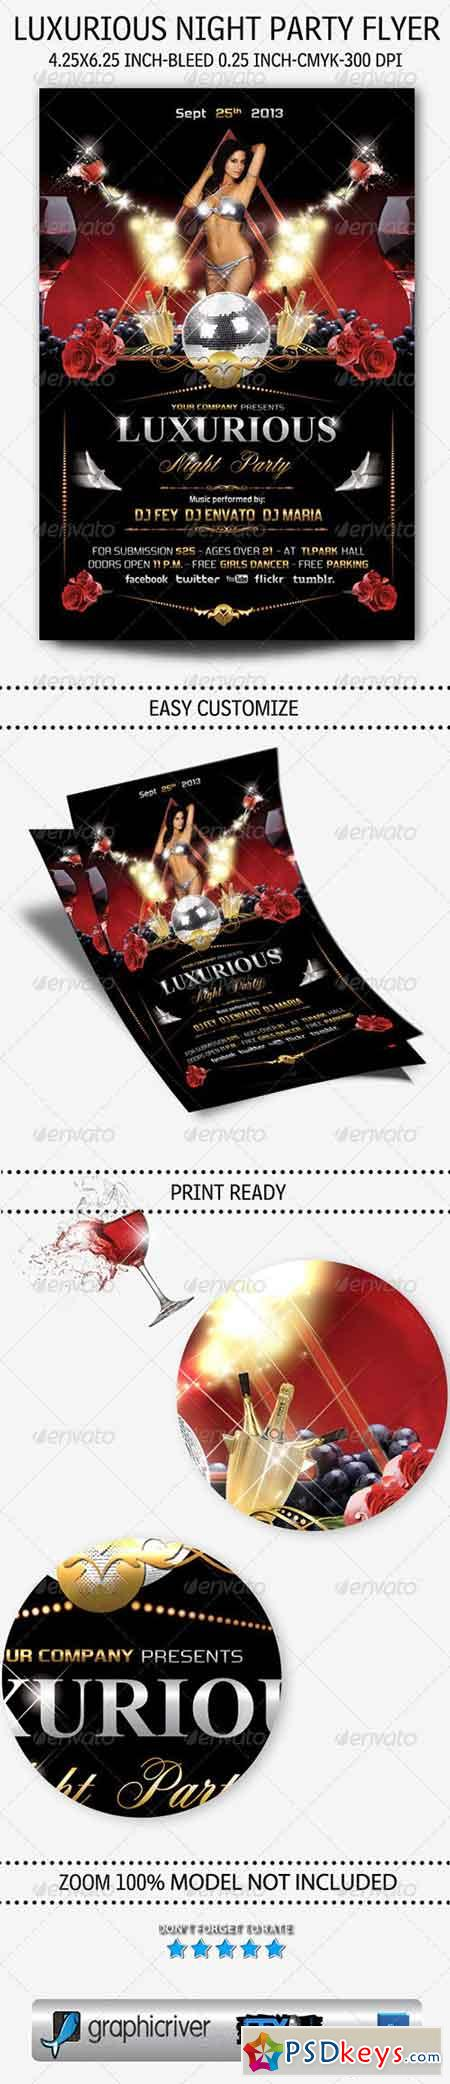 Luxurious Night Party Flyer 5483436